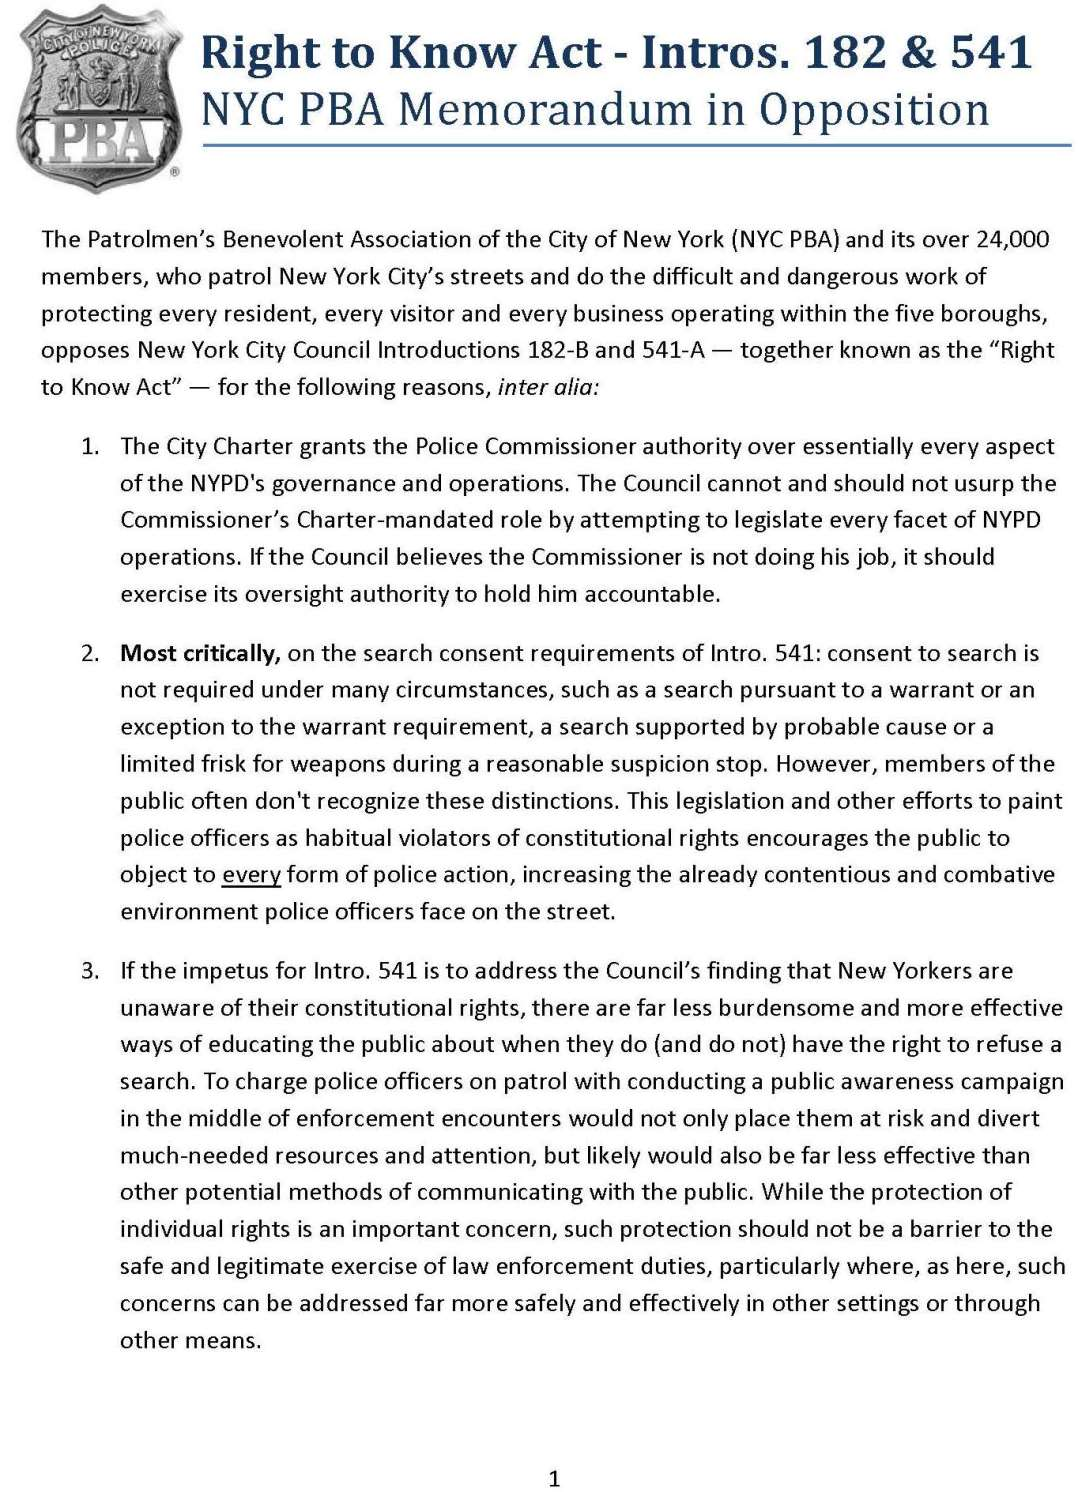 NYC PBA - Right to Know Act - Intro 182 Intro 541_FINAL_Page_1